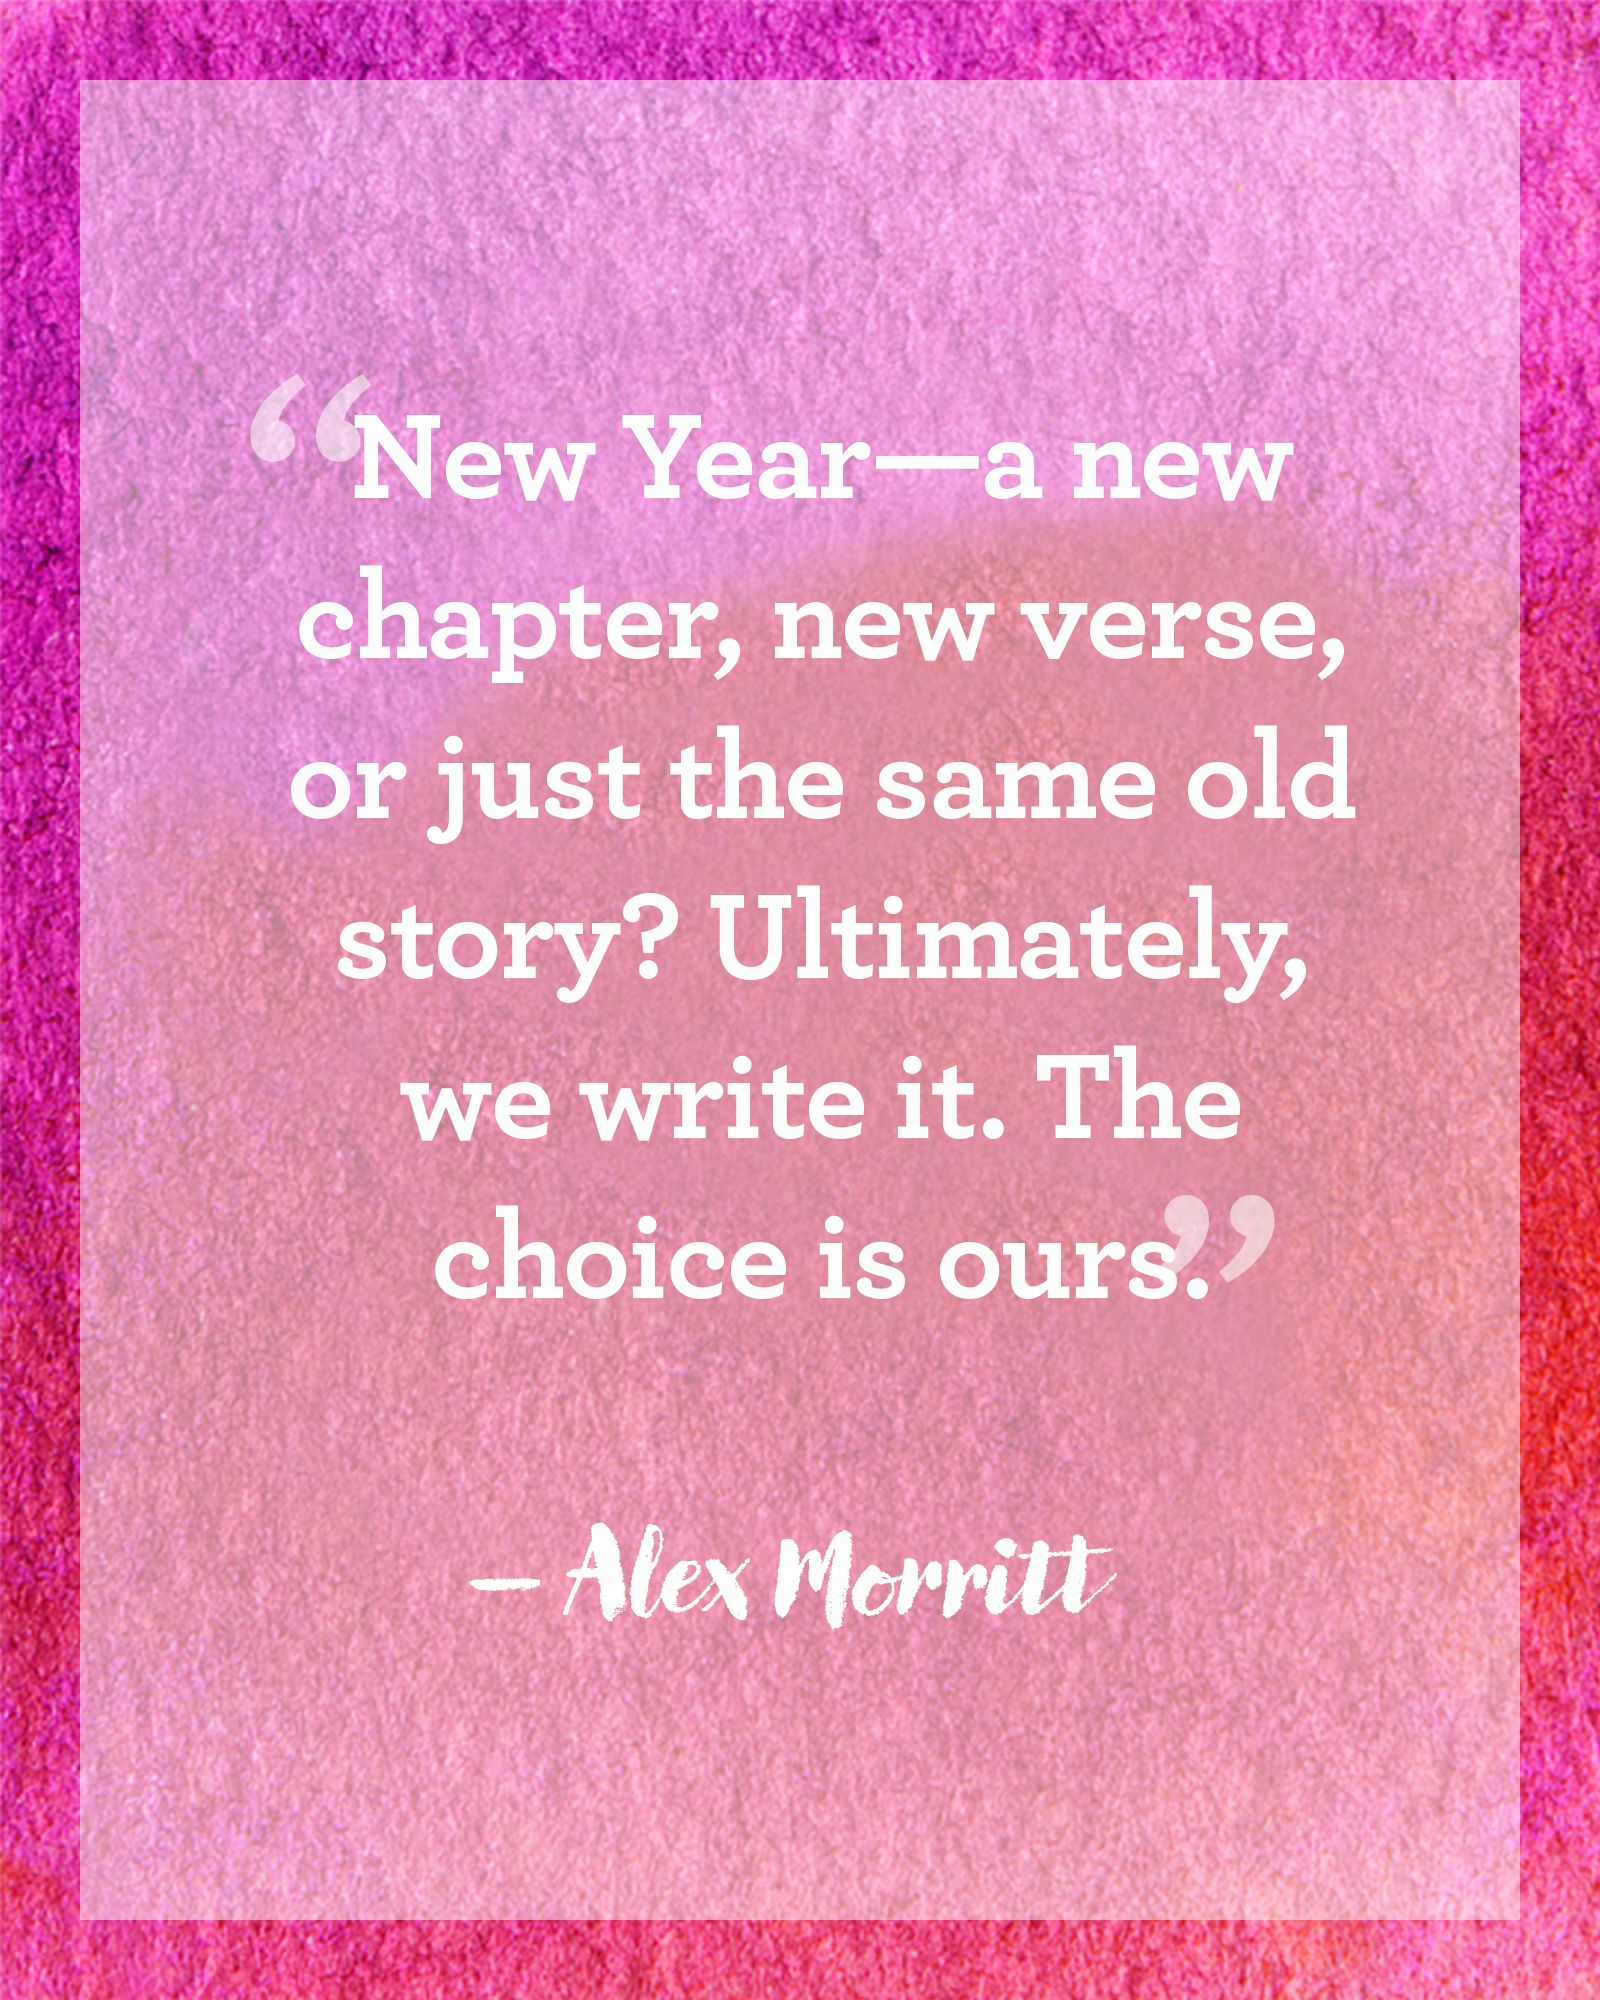 The Choice Quotes New Year Quotes  20 Quotes That Will Inspire You To Make 2017